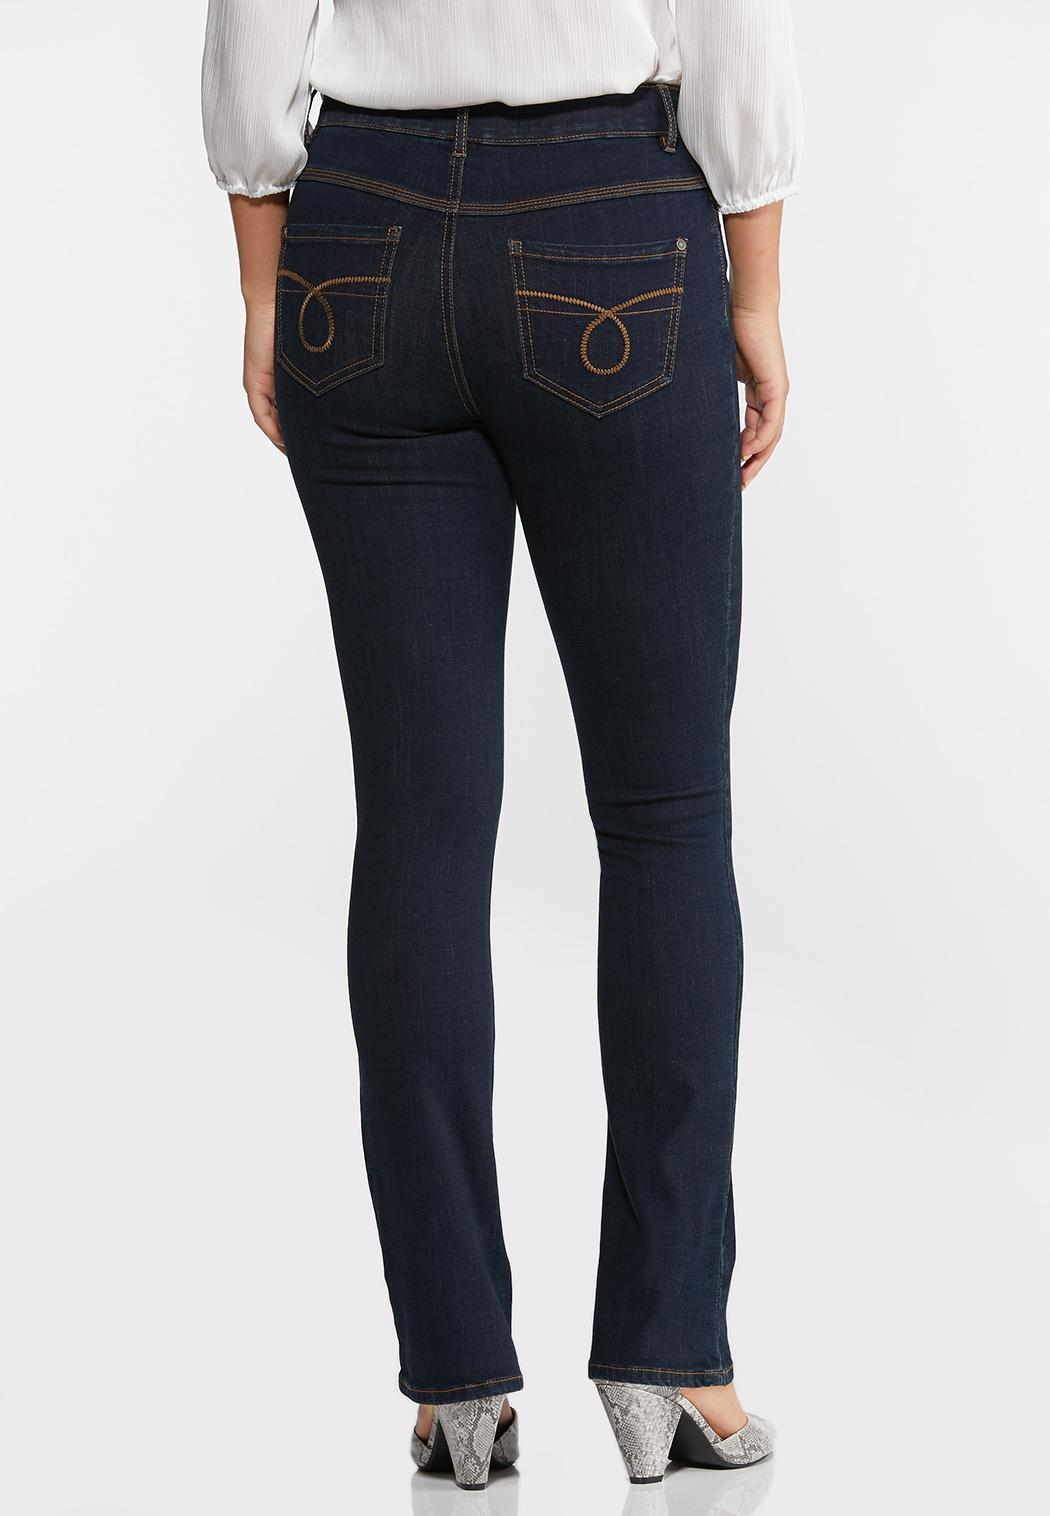 High-Rise Bootcut Jeans (Item #44345382)